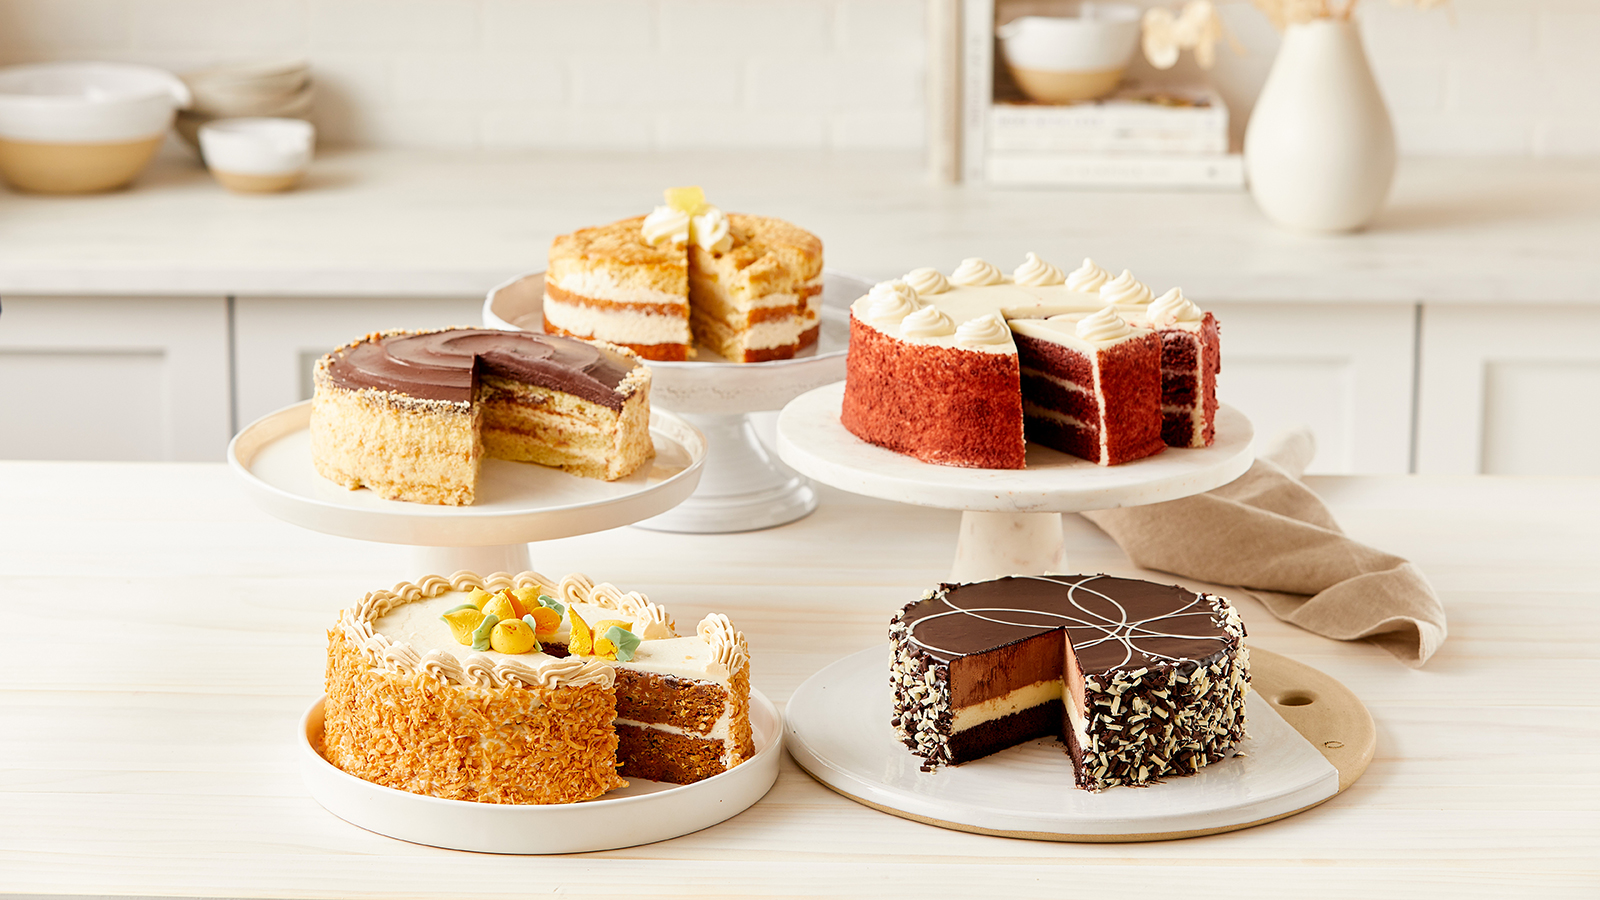 new gourmet cakes - carrot, chocolate, boston cream, pinapple, red velvet